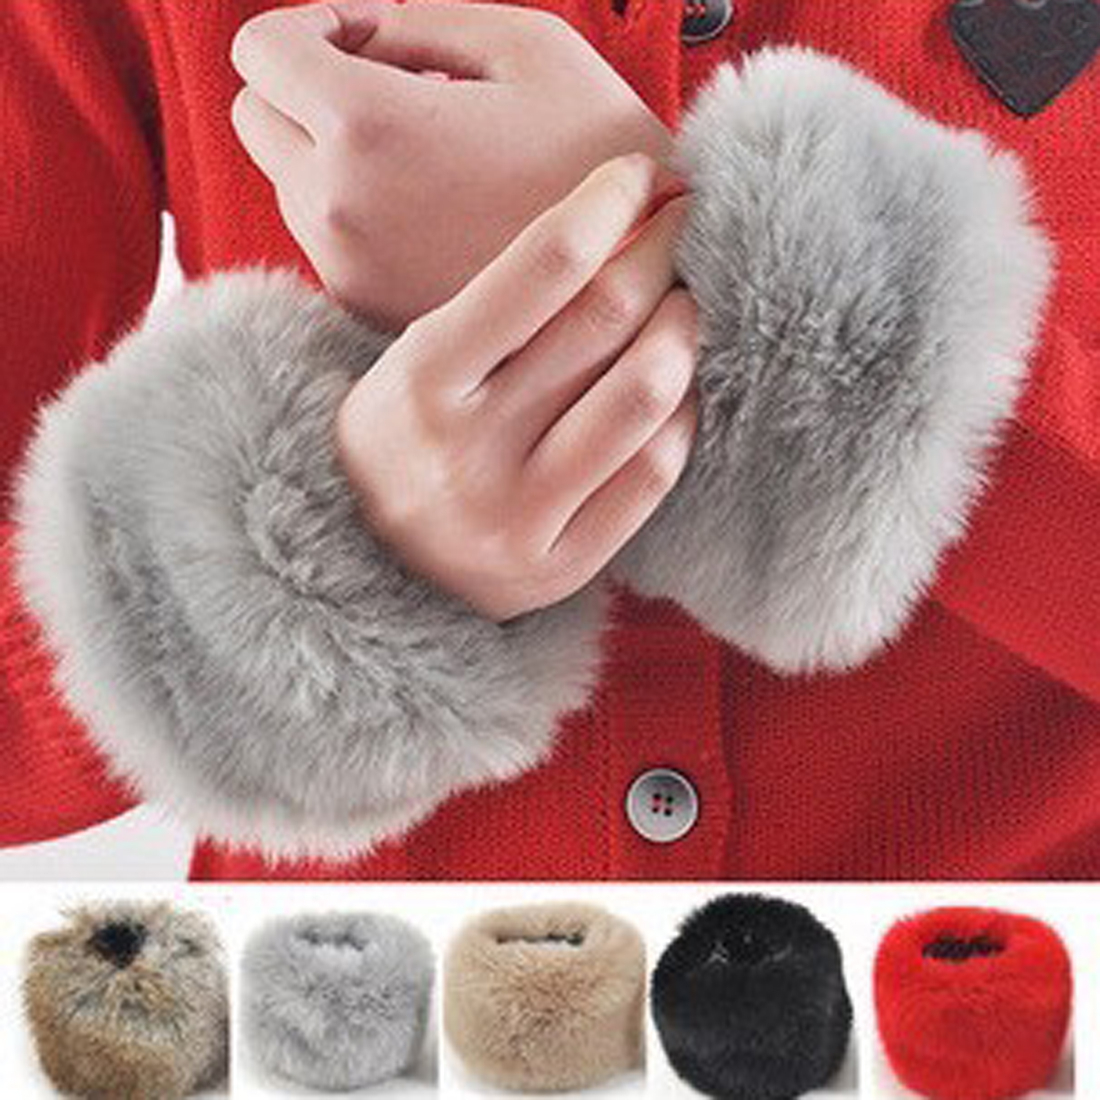 1 Pair Solid Color Fashion Winter Warm Faux Fur Wrist For Ladies Women's Warmer Cuffs Arm Warmers Wraps Plush Oversleeve